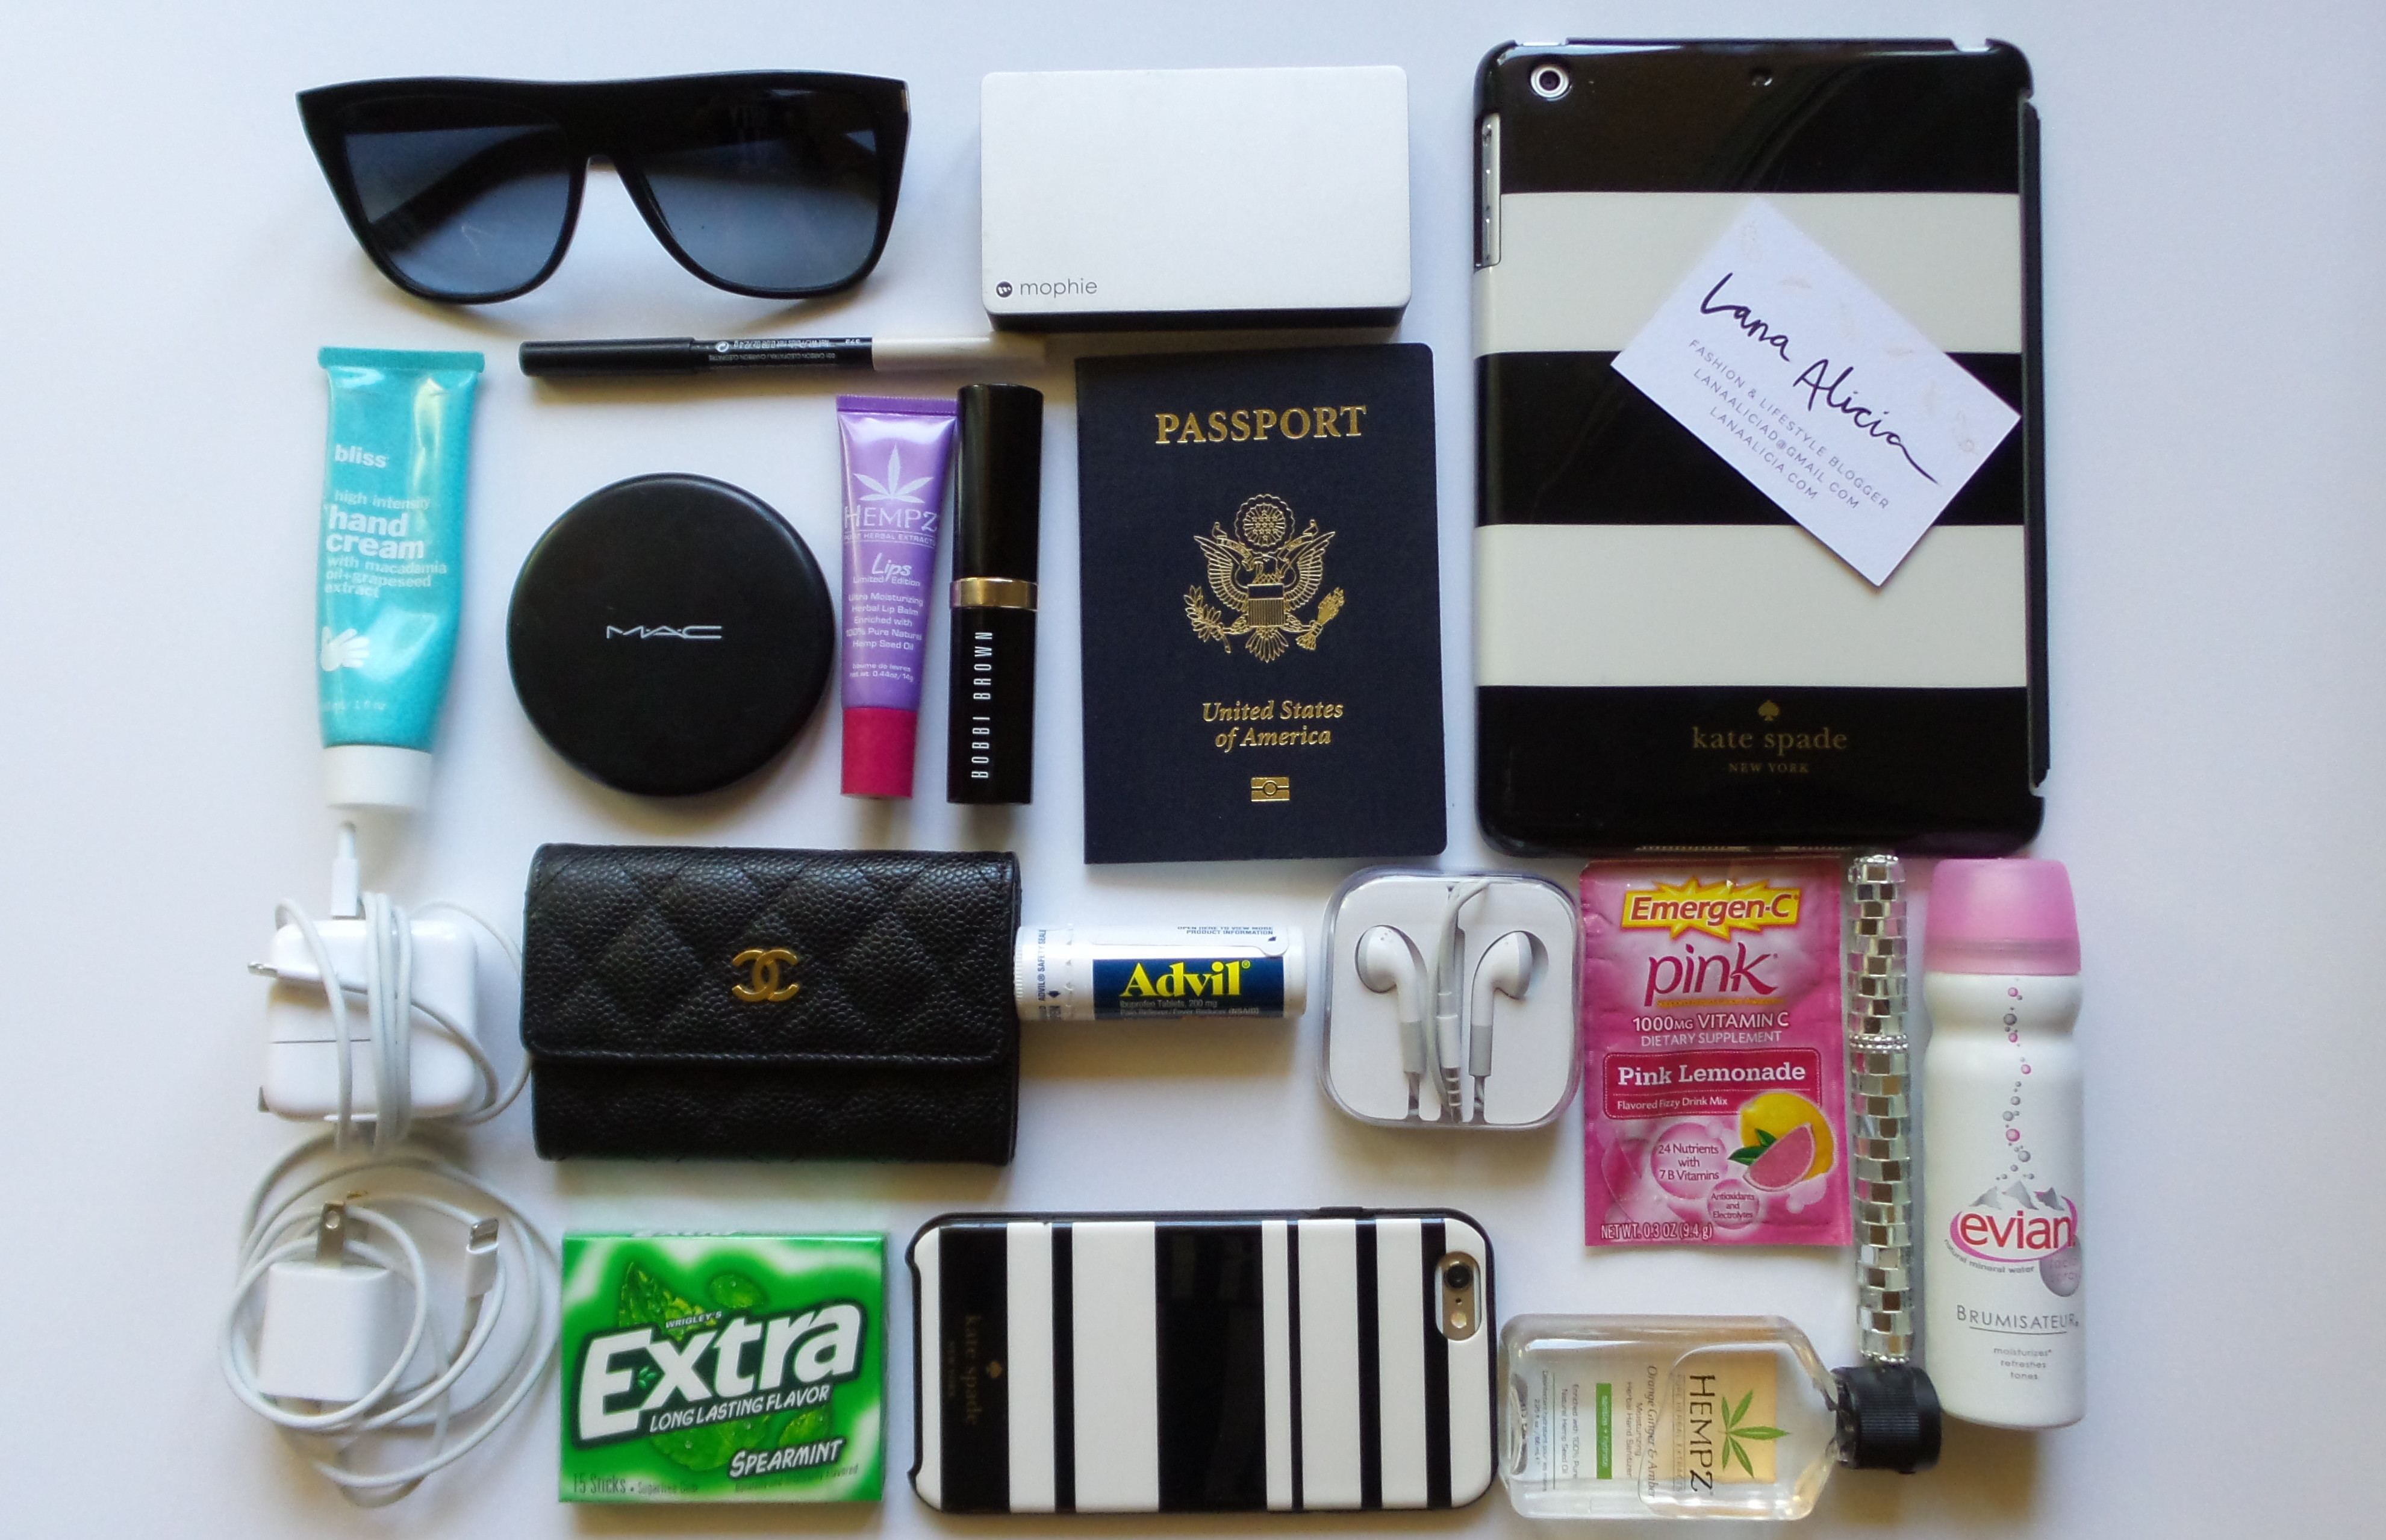 Things to Bring on an Airplane pics